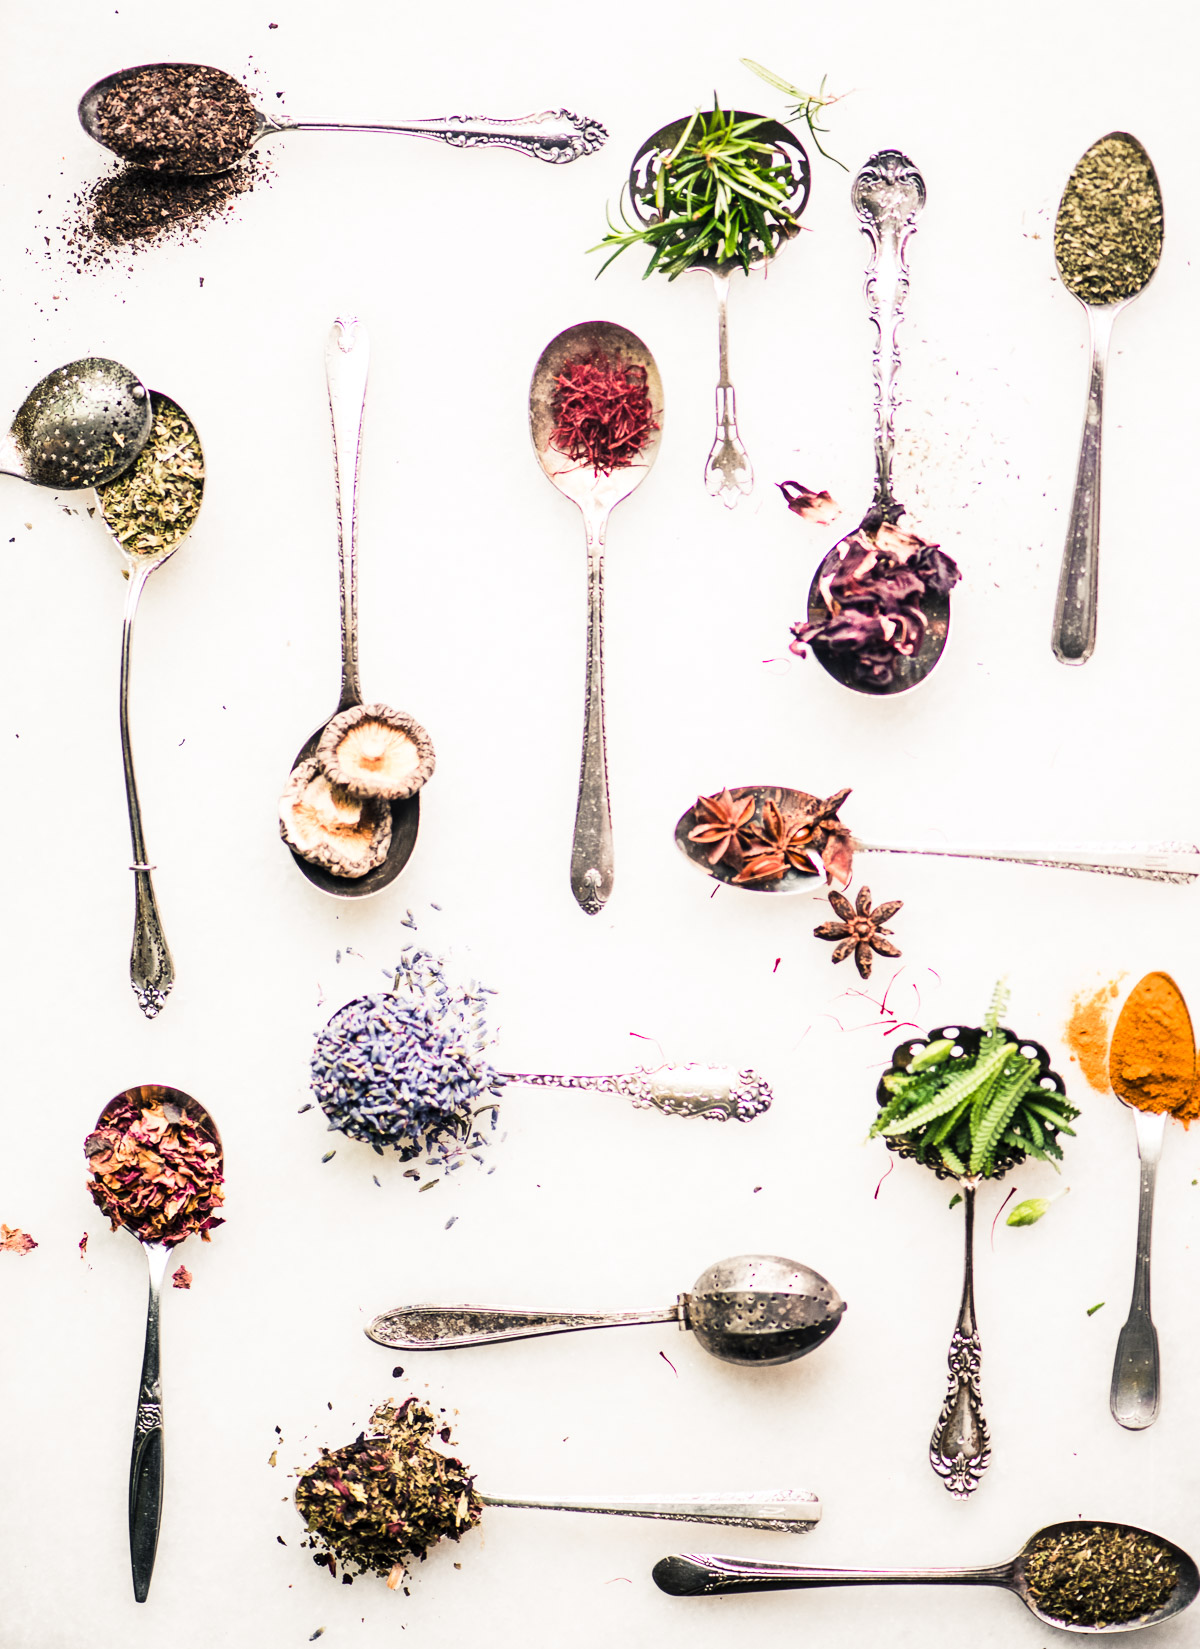 tea spoons with various tea ingredients